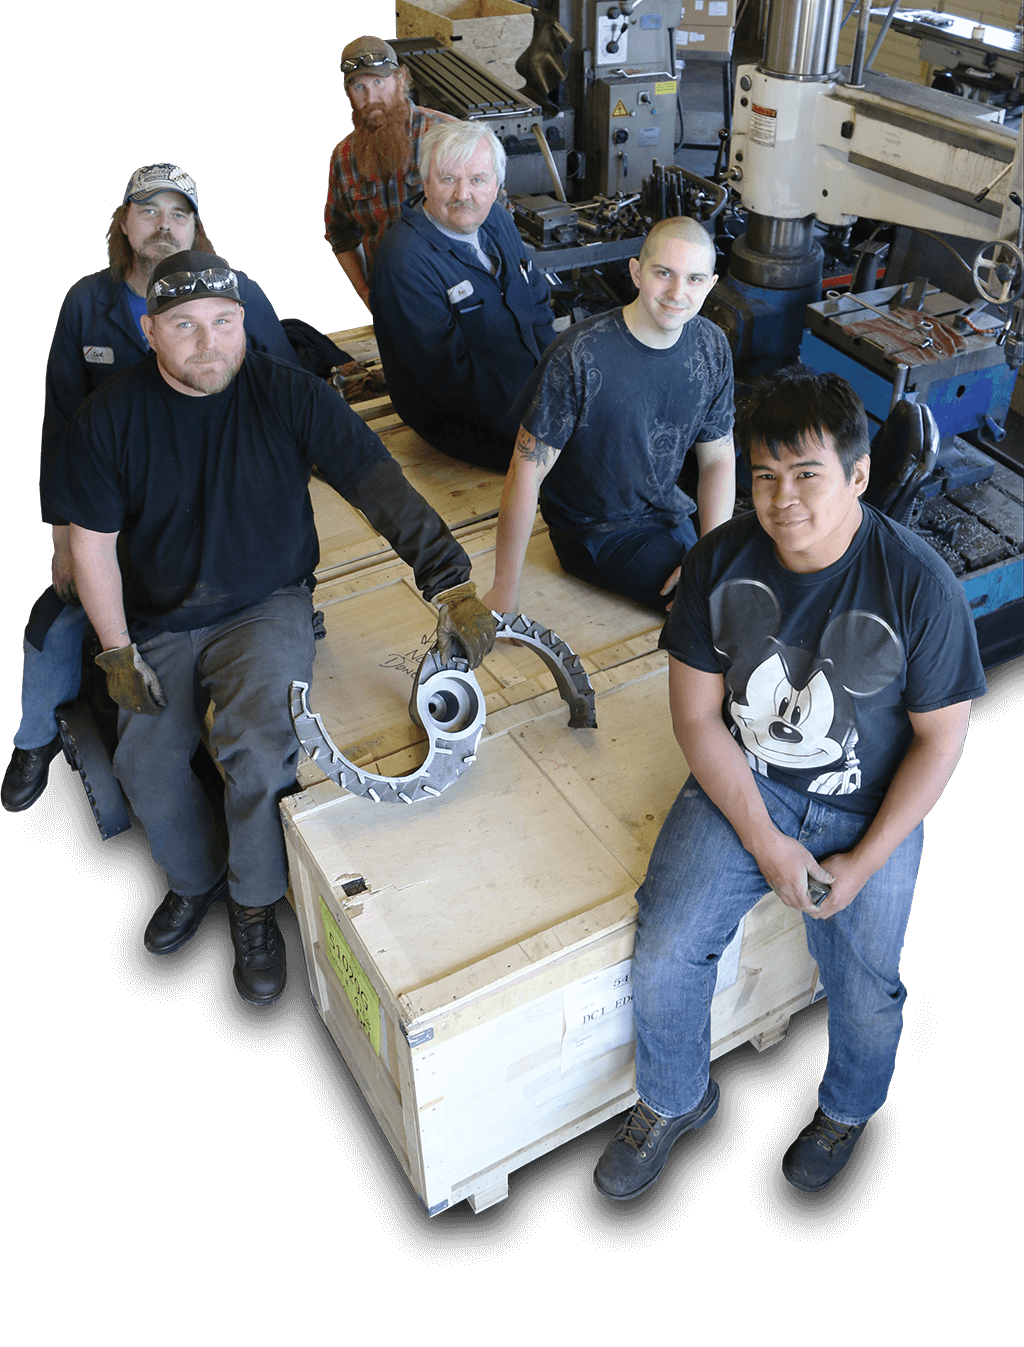 Western Industrial - St. Paul, Oregon - Full service fabrication and machine shop